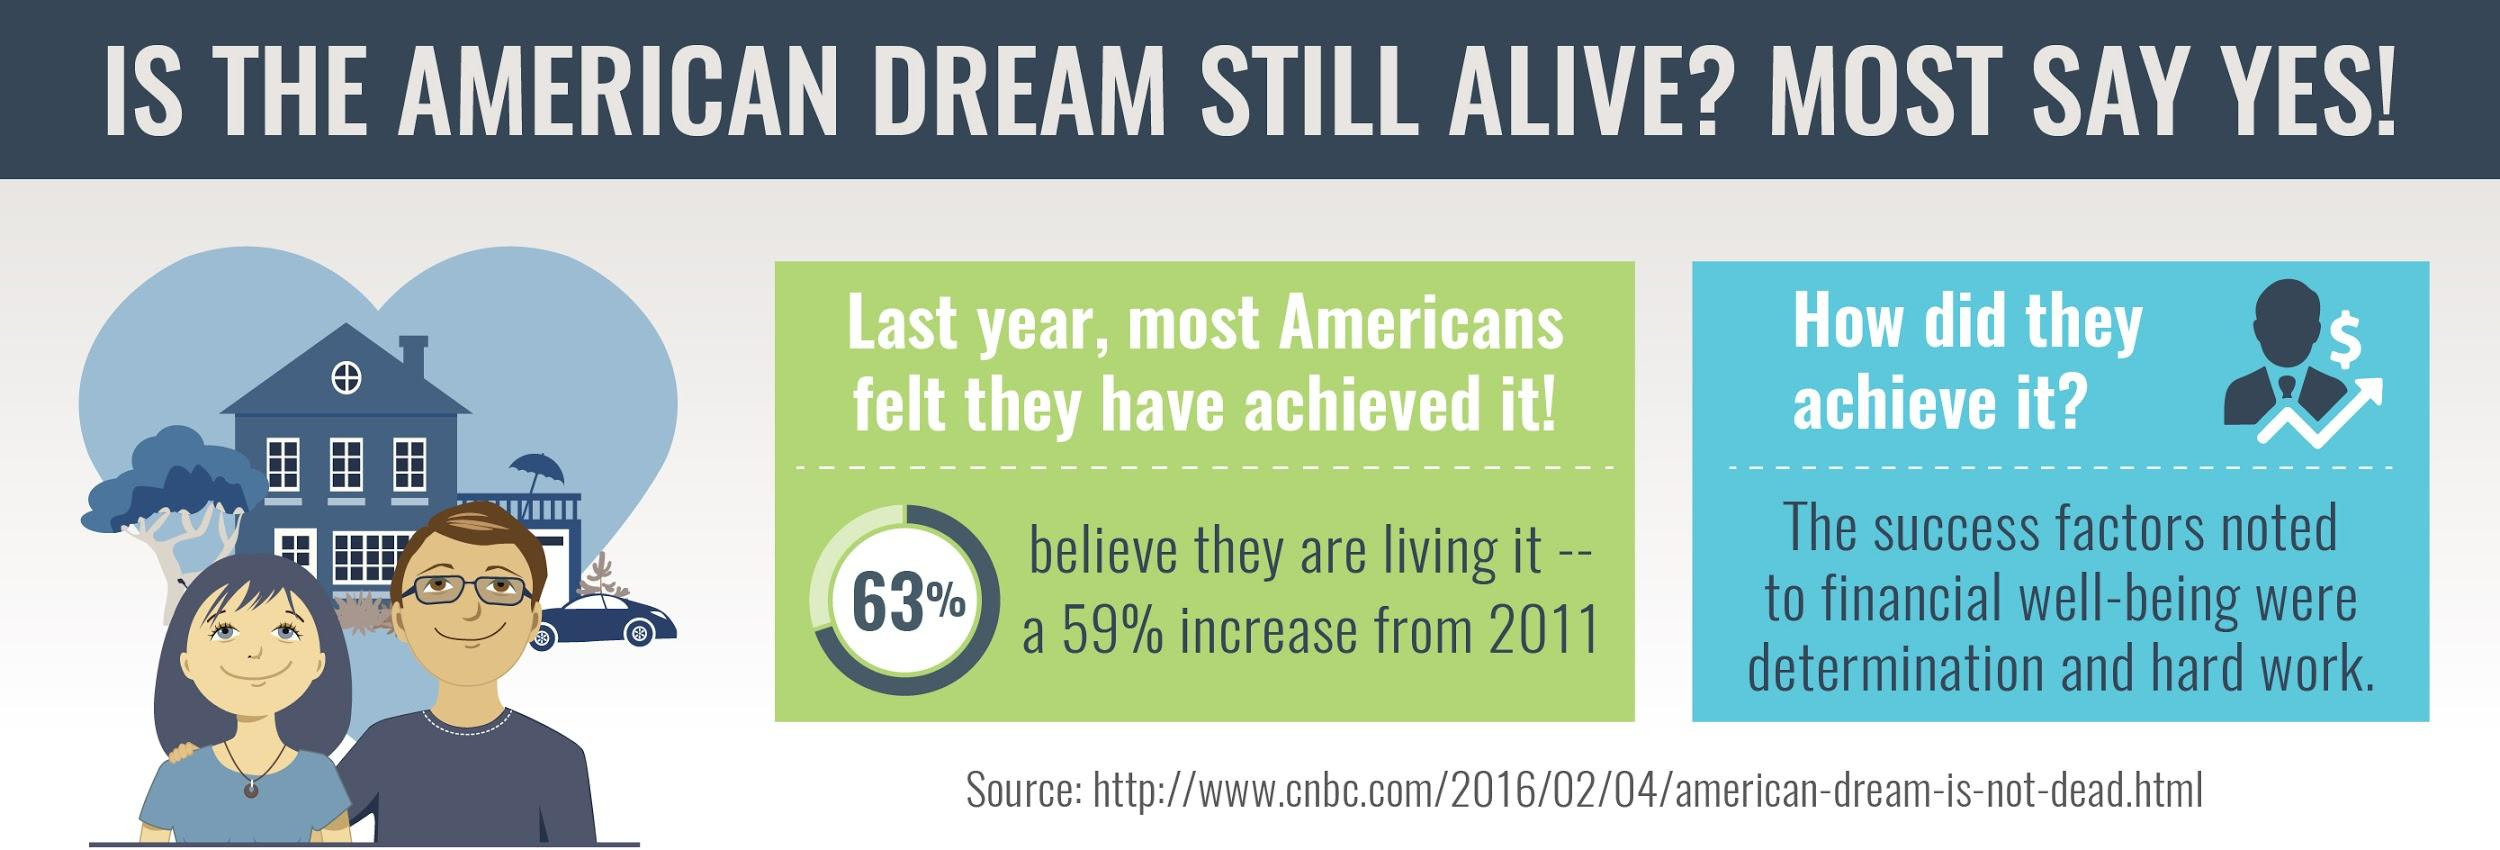 Survey results about the American Dream